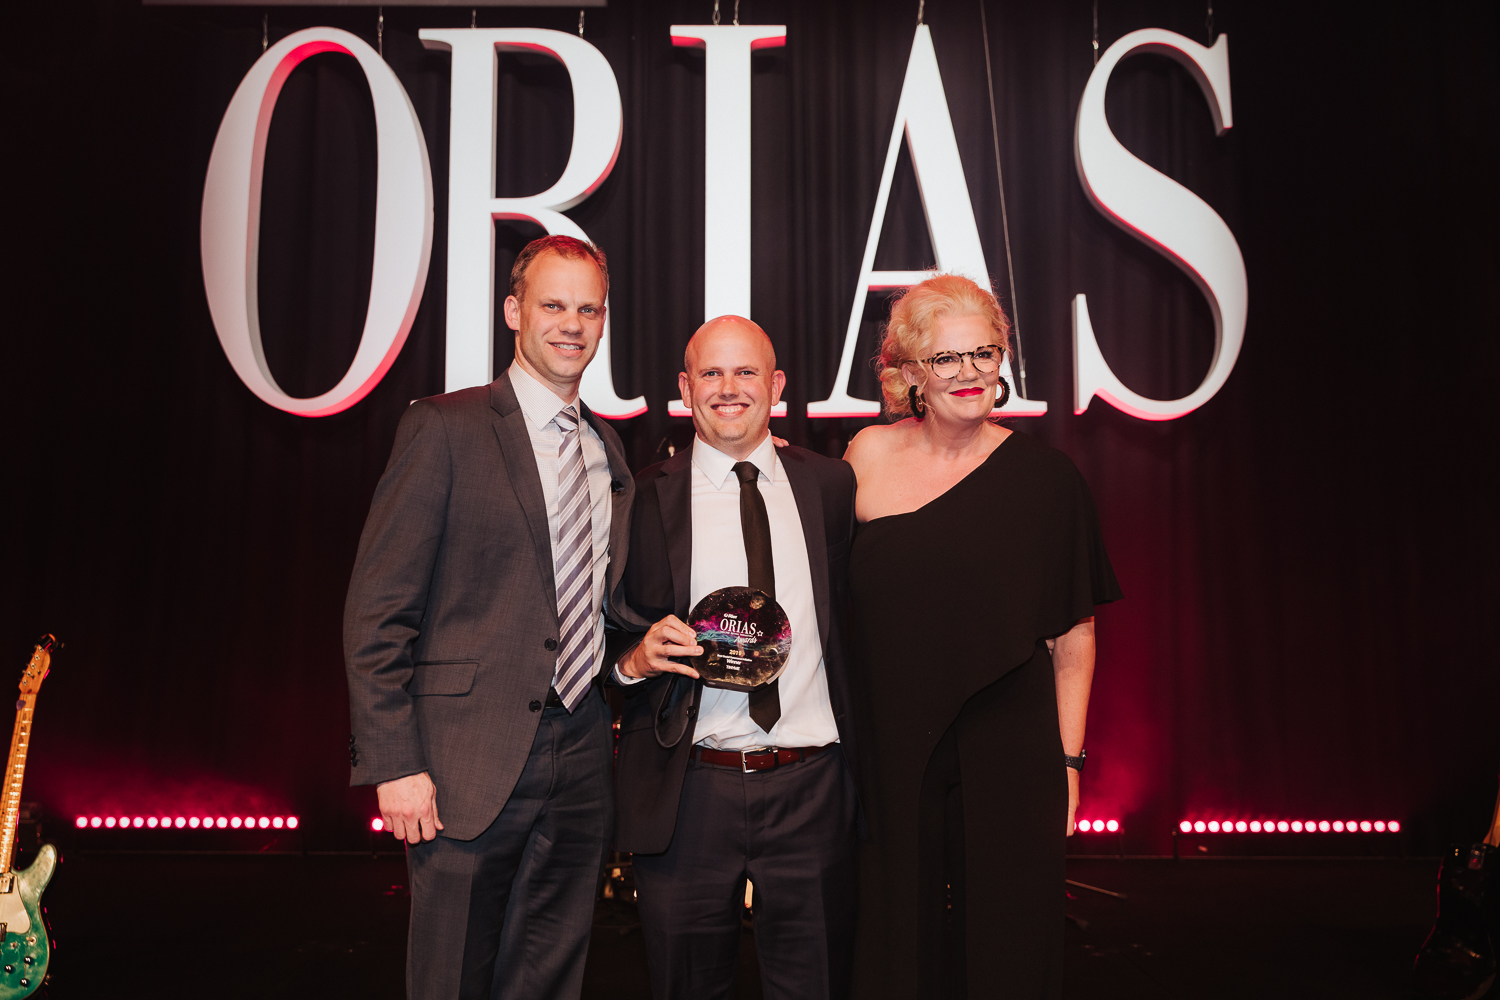 Showpo comes up trumps at this year's ORIAS